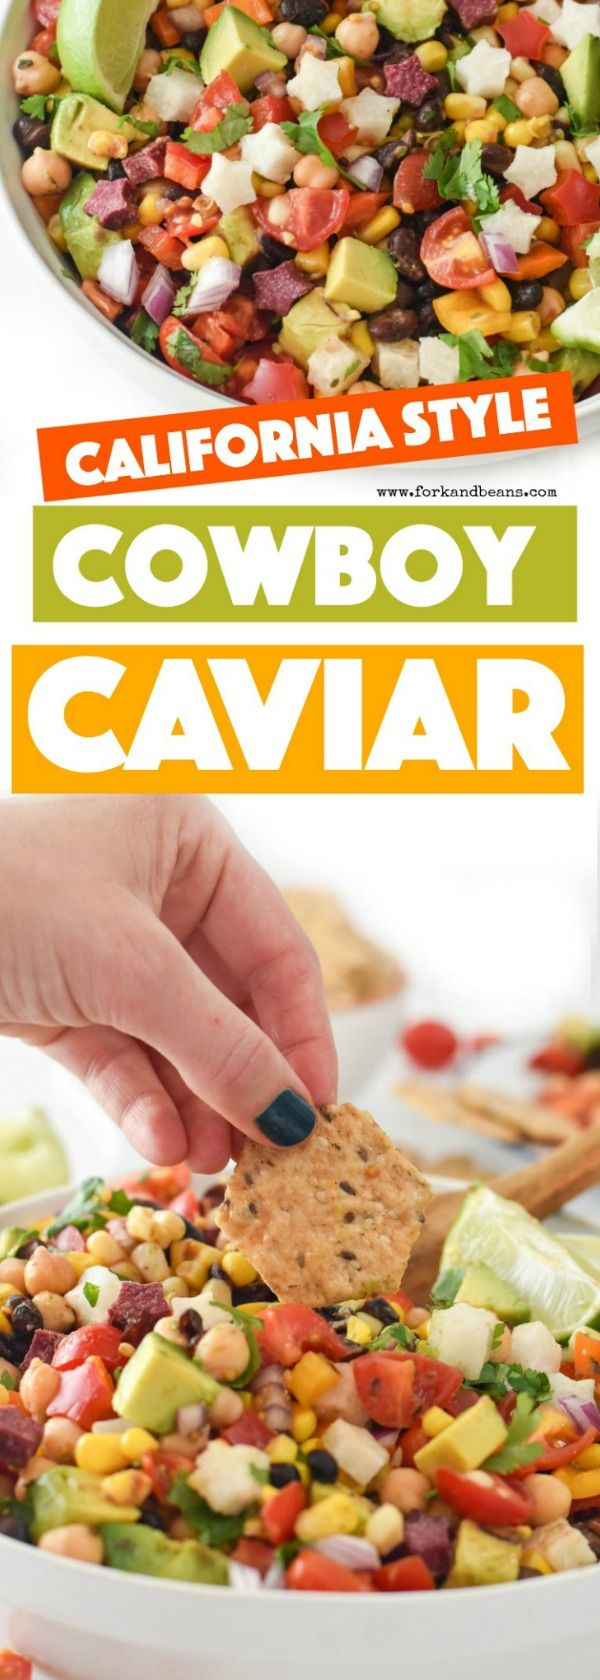 California Style Cowboy Caviar - Fork and Beans